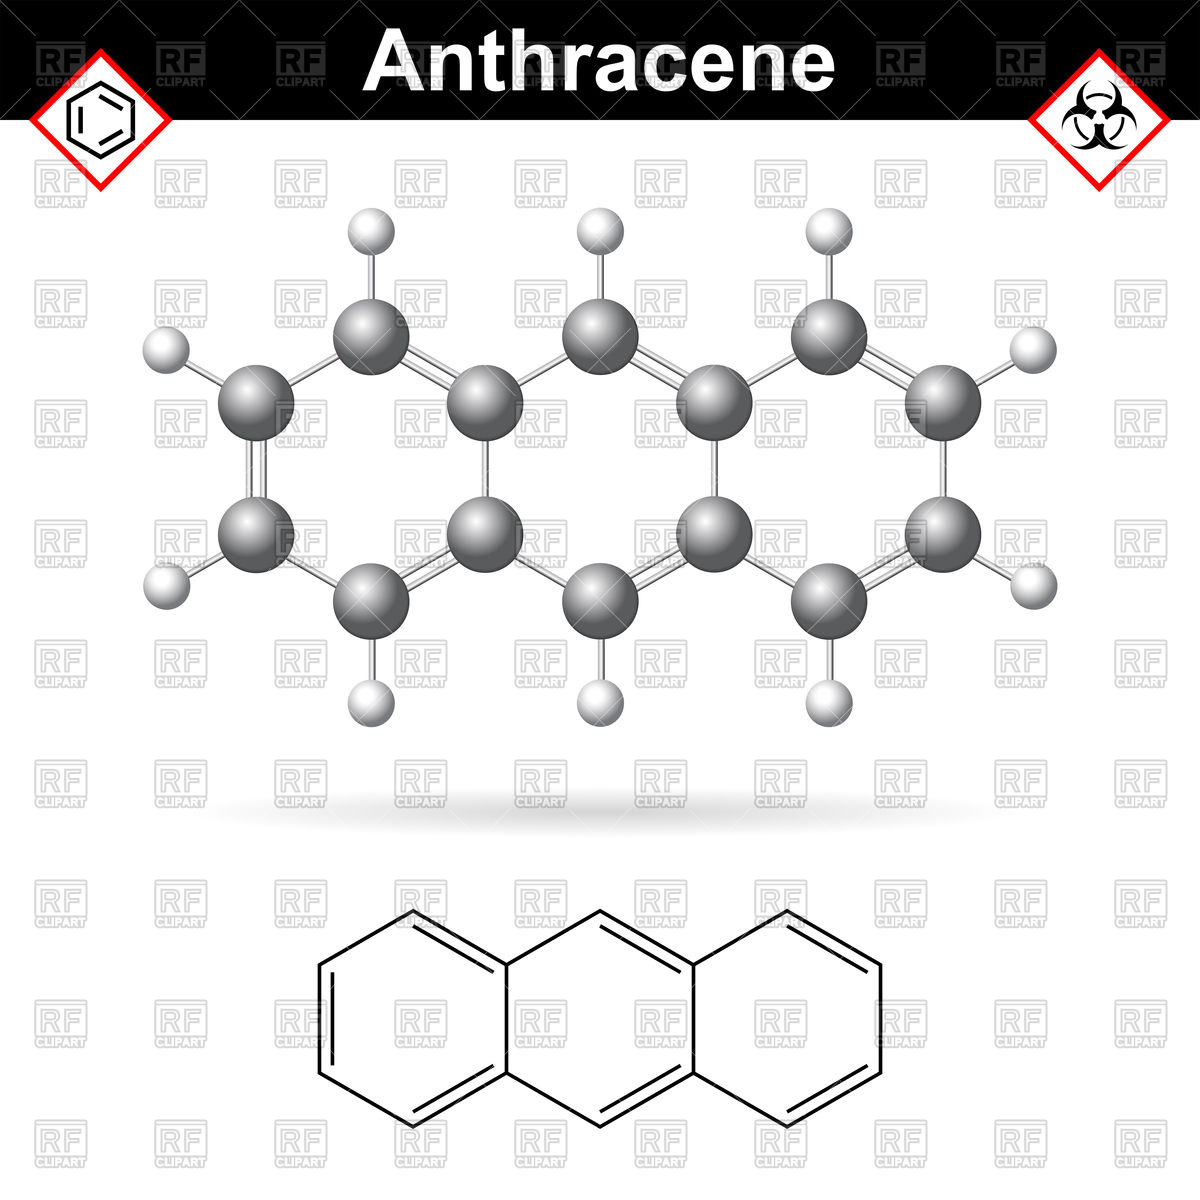 Anthracene chemical molecule, polycyclic aromatic hydrocarbon.